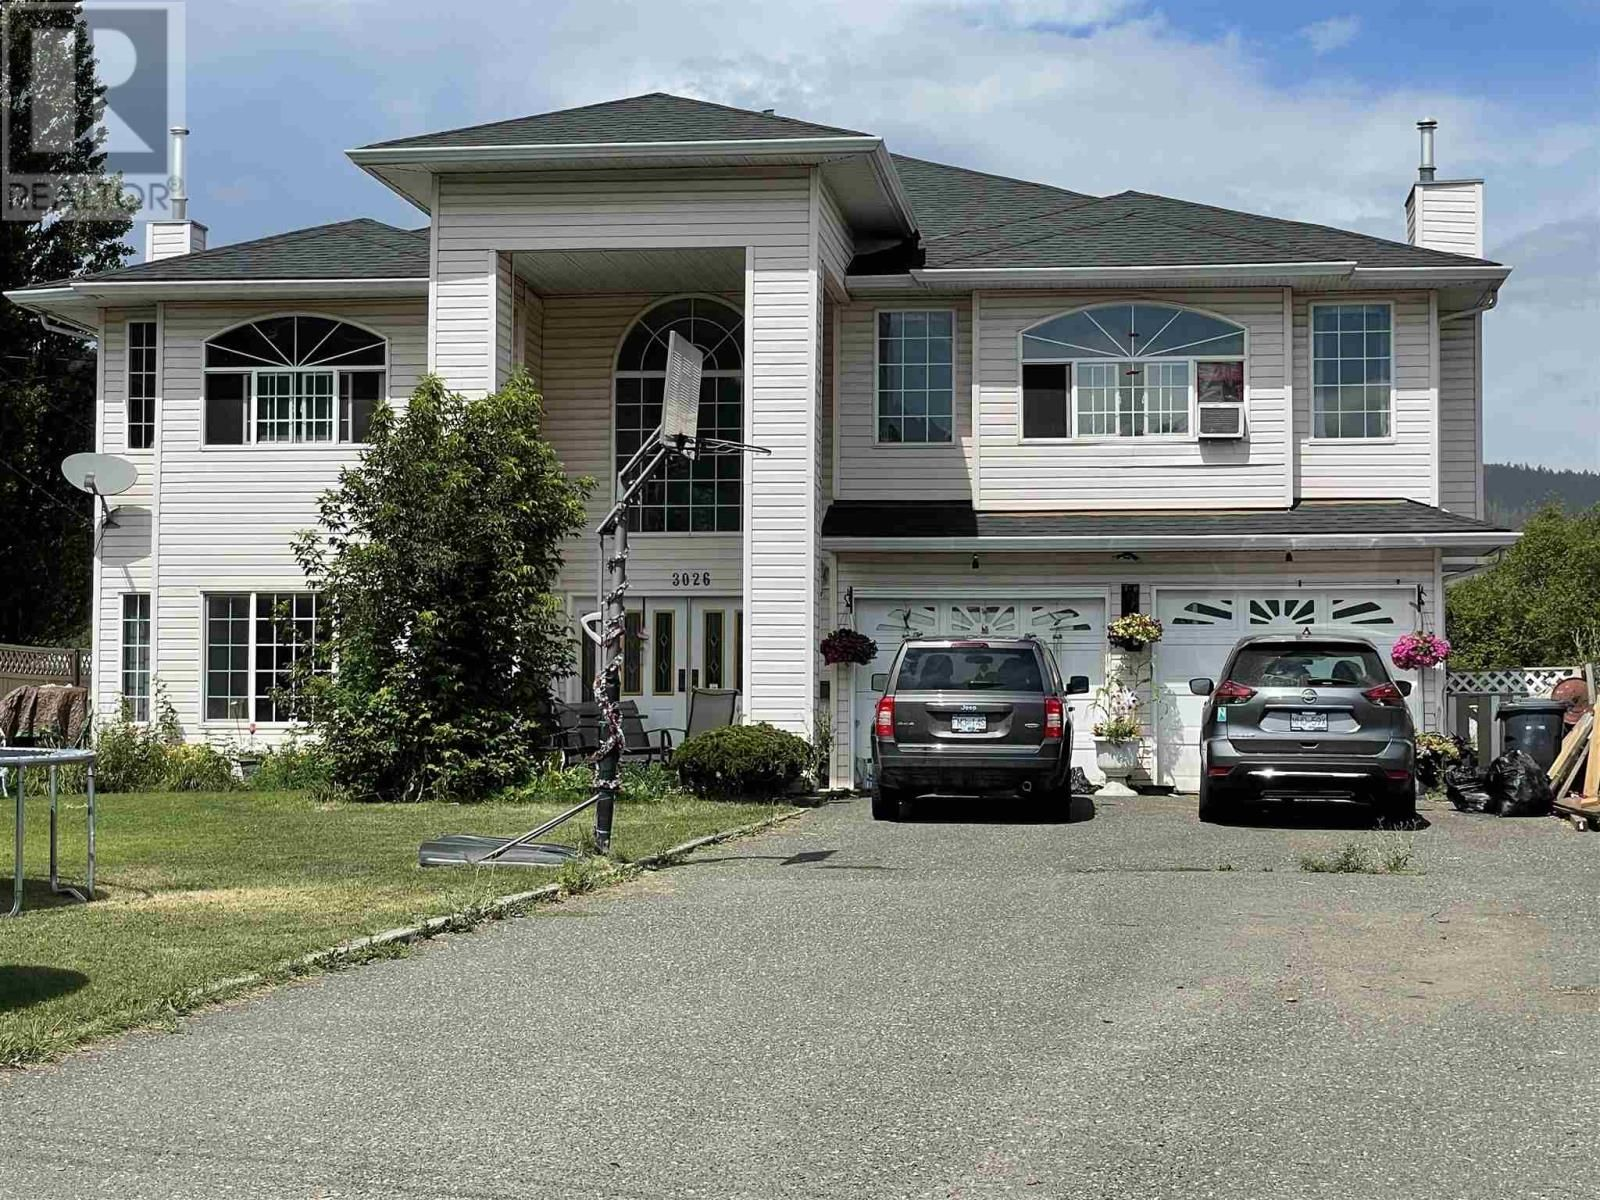 Main Photo: 3026 EDWARDS DRIVE in Williams Lake: House for sale : MLS®# R2604151